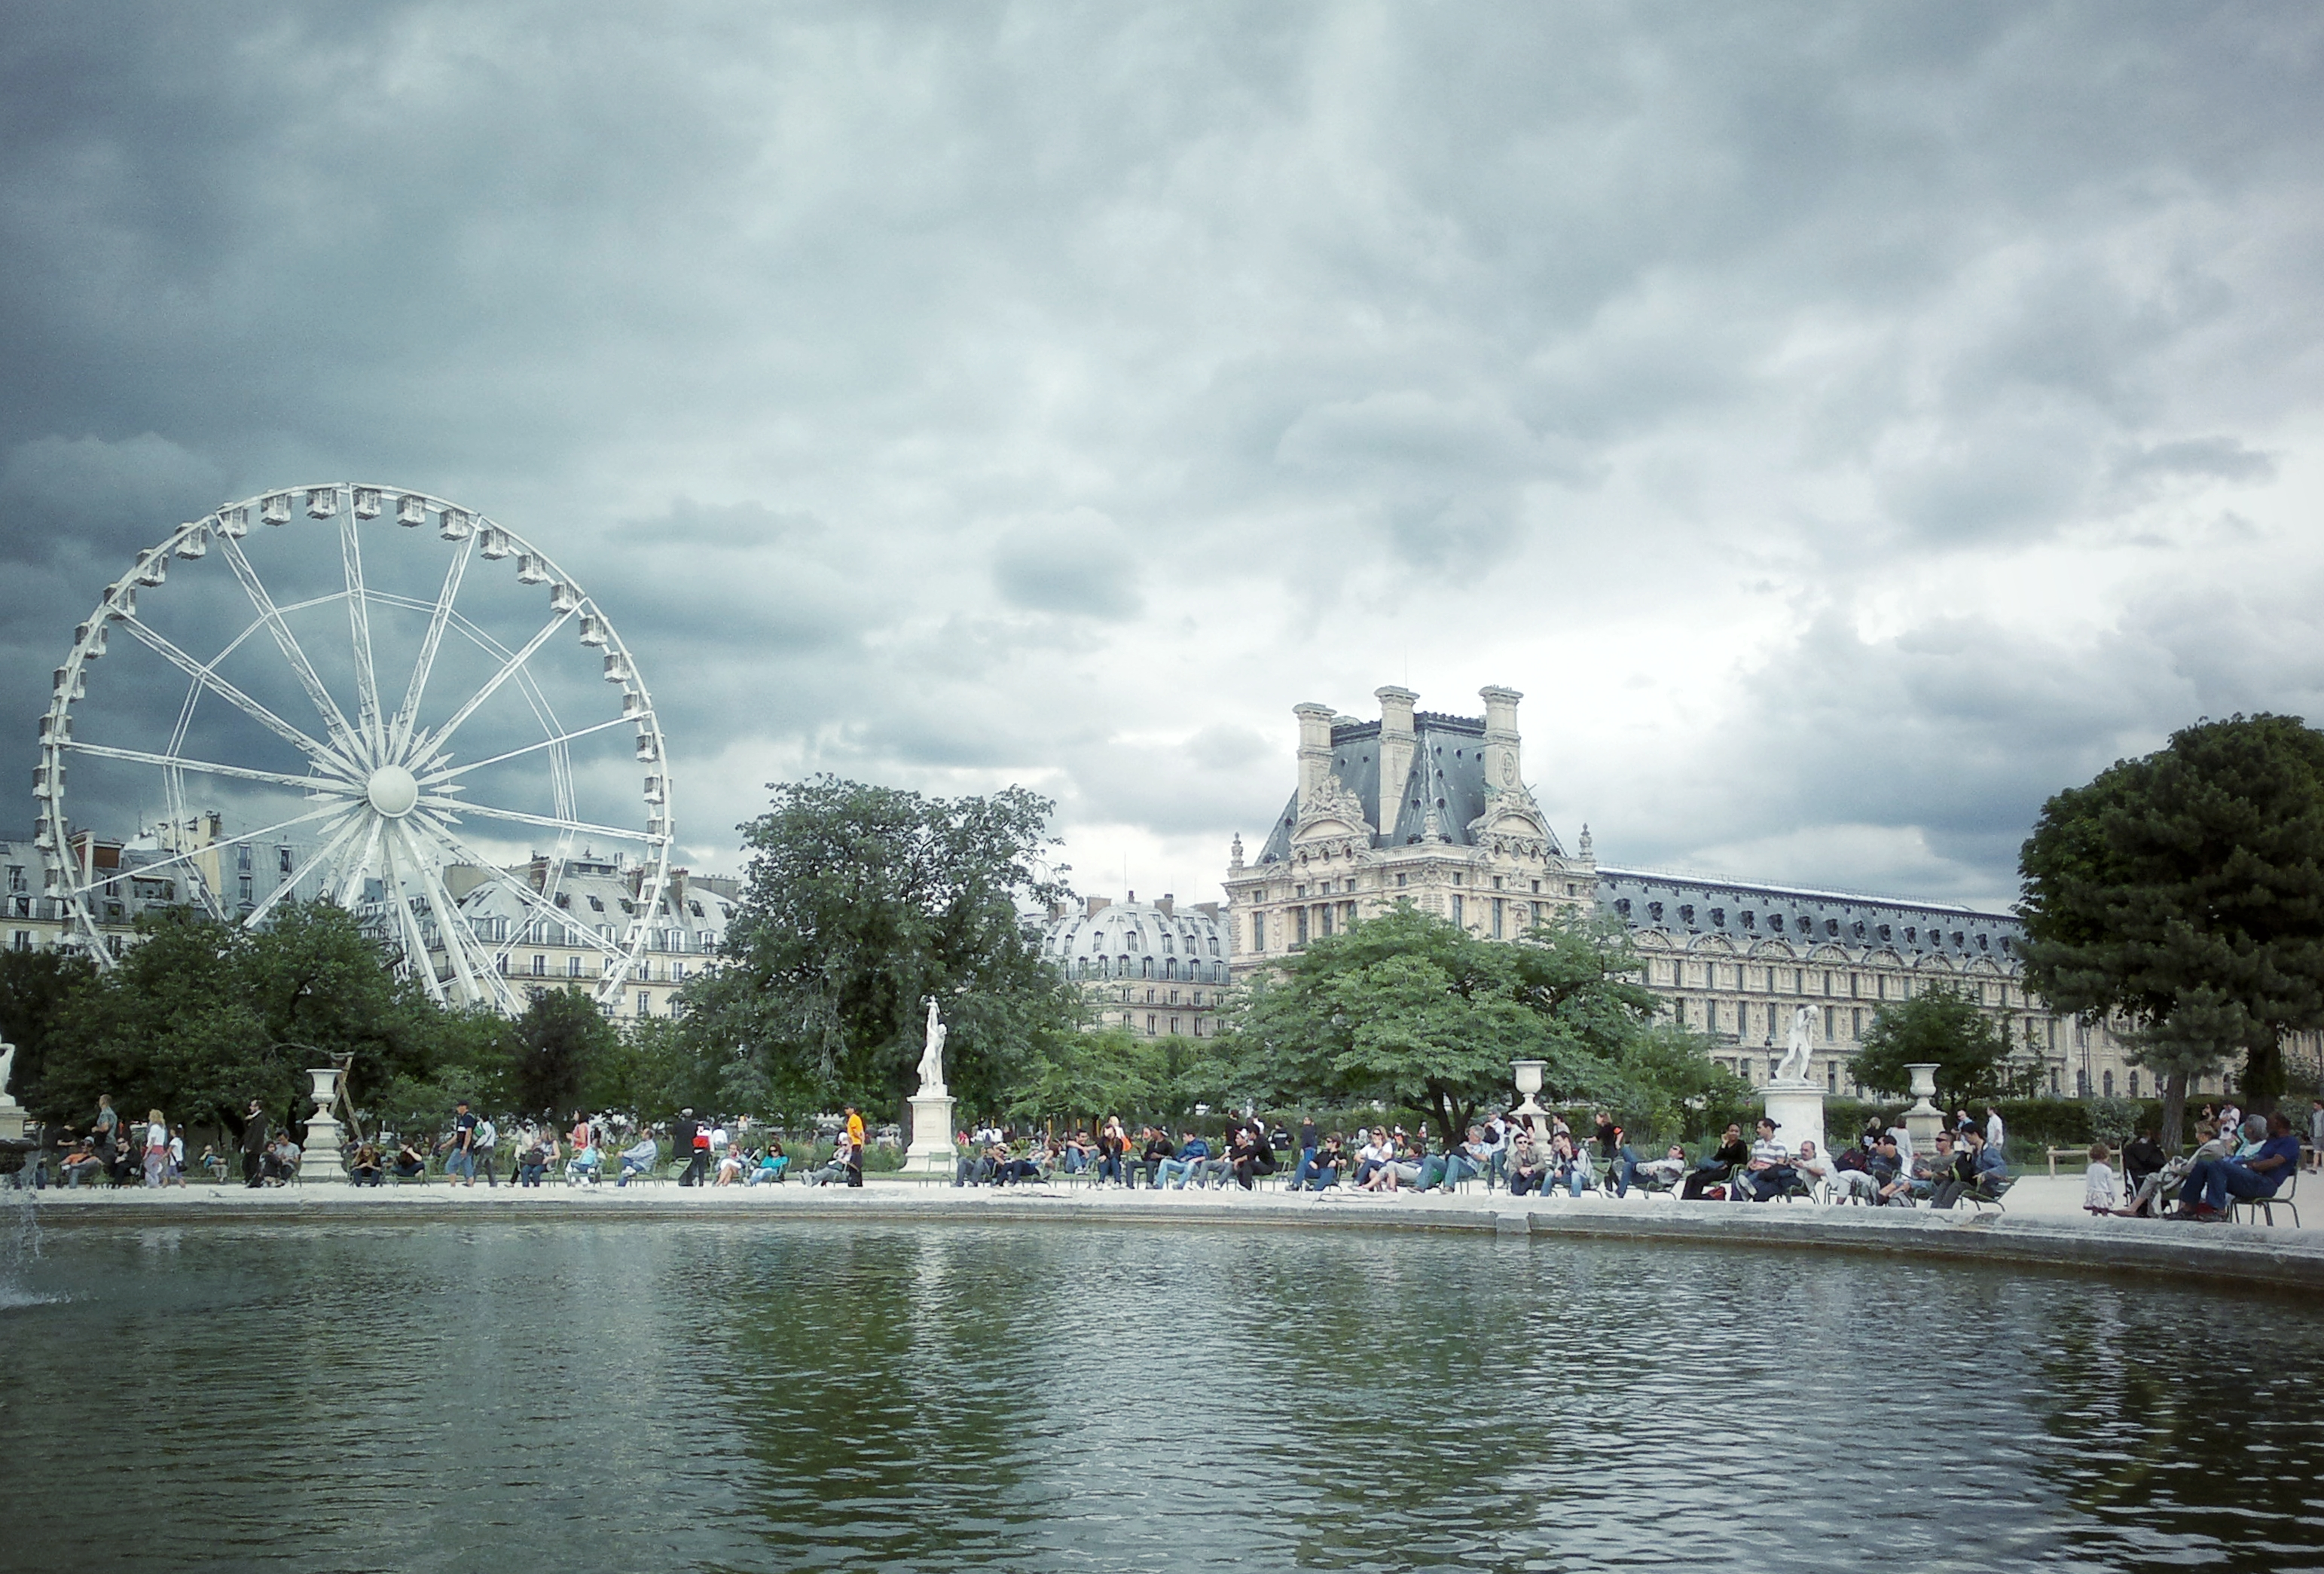 fountain Ferris wheel Louvre museum cloudy sky